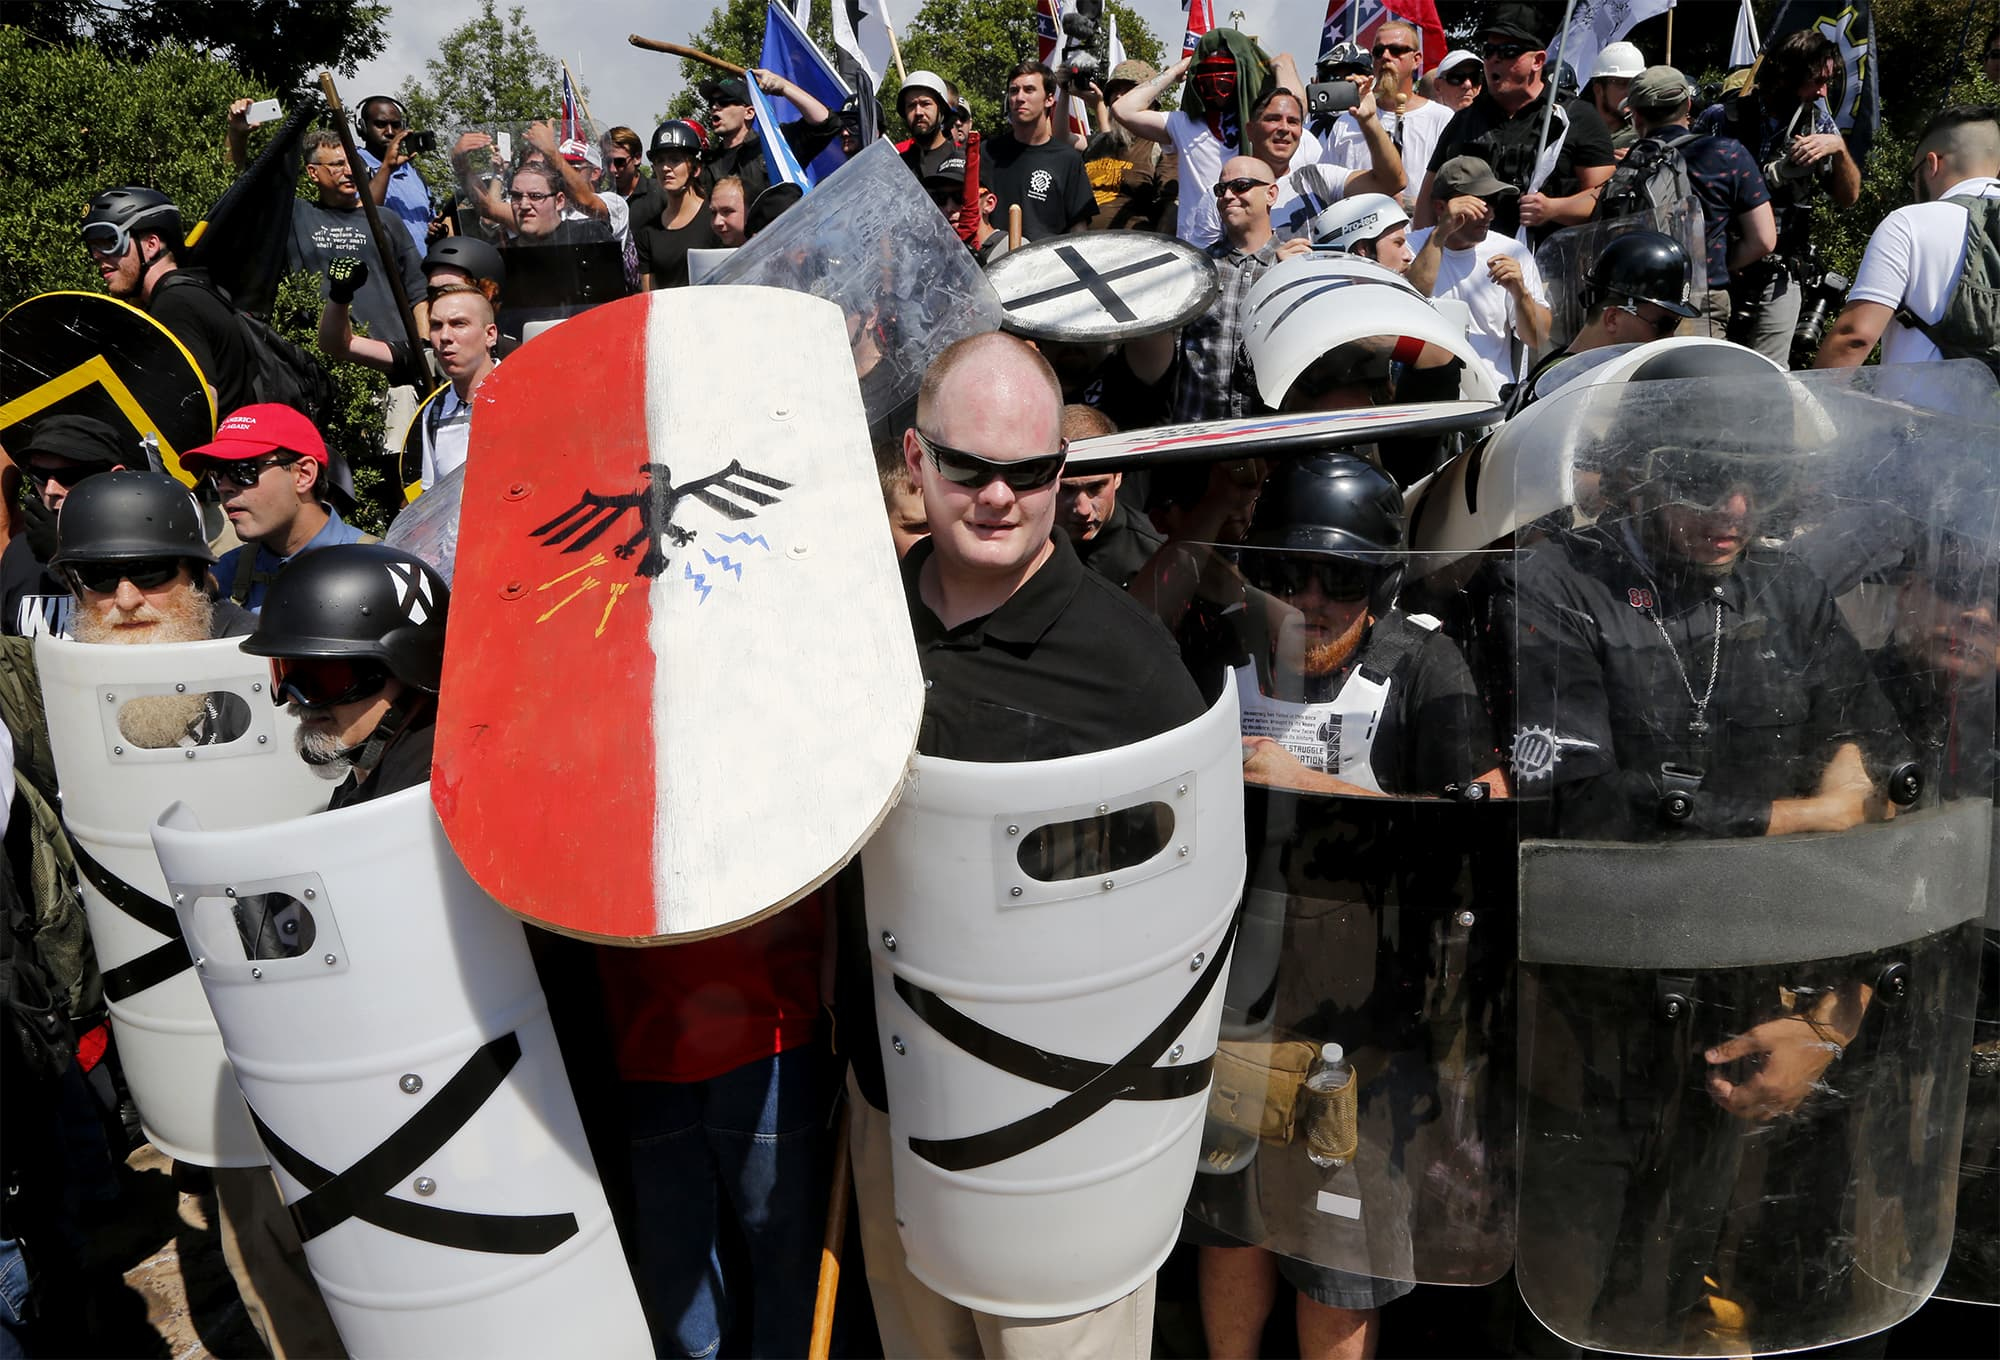 White supremacist demonstrators use shields as they guard the entrance to Lee Park in Charlottesville, VA. ─ AP